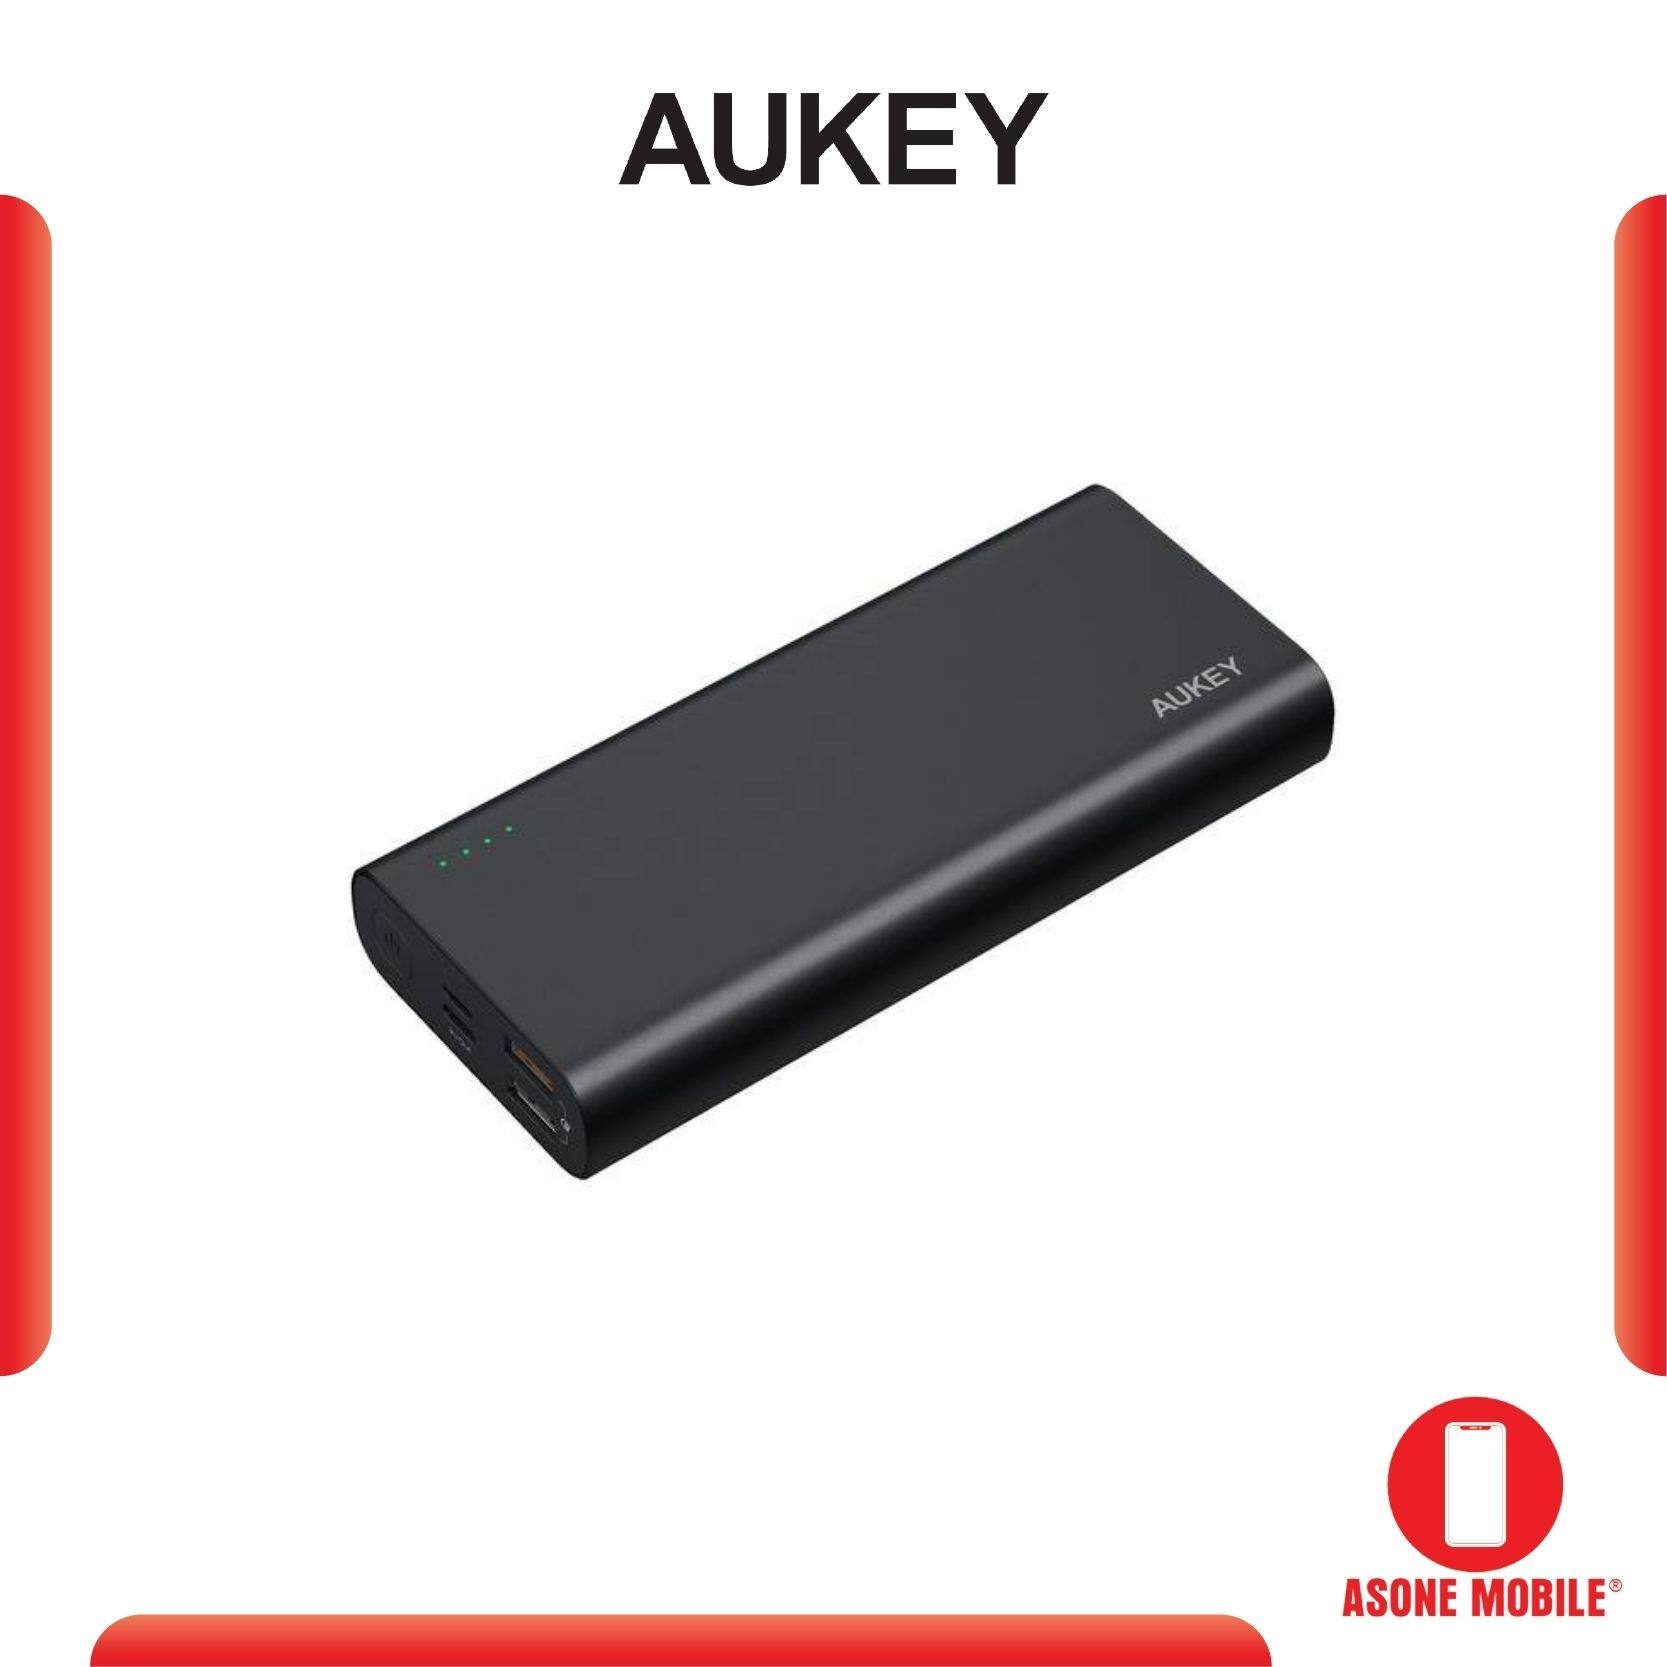 Aukey PB-XD13 20000mAh USB C QC3.0 And Power Delivery Premium Power Bank 2 year warranty